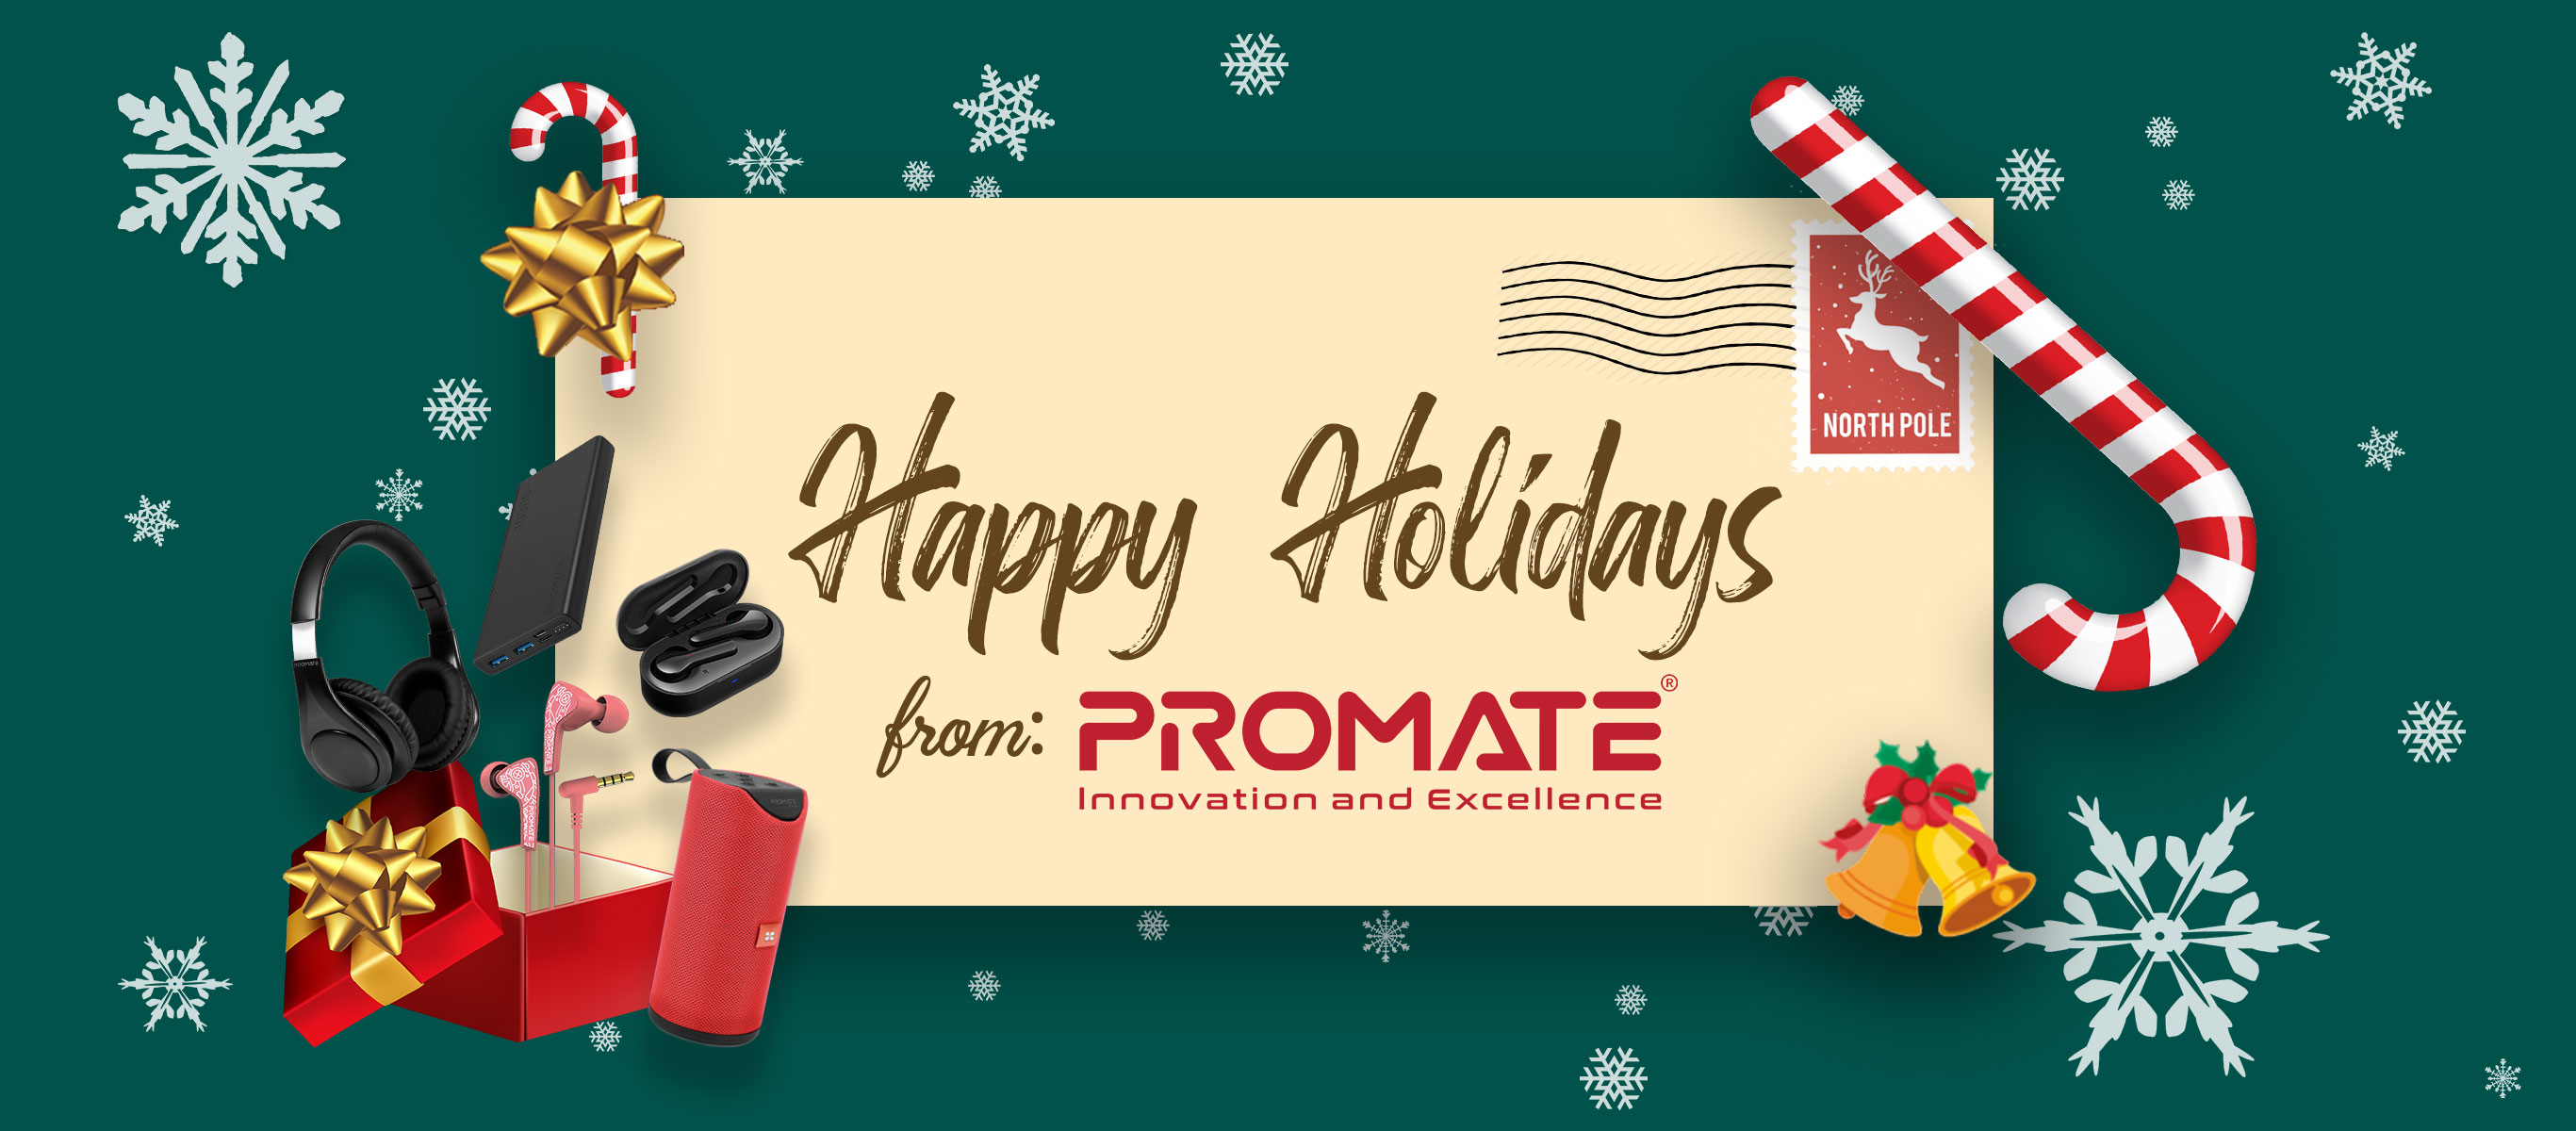 Complete Your Christmas Shopping List with Promate's Holiday Promo